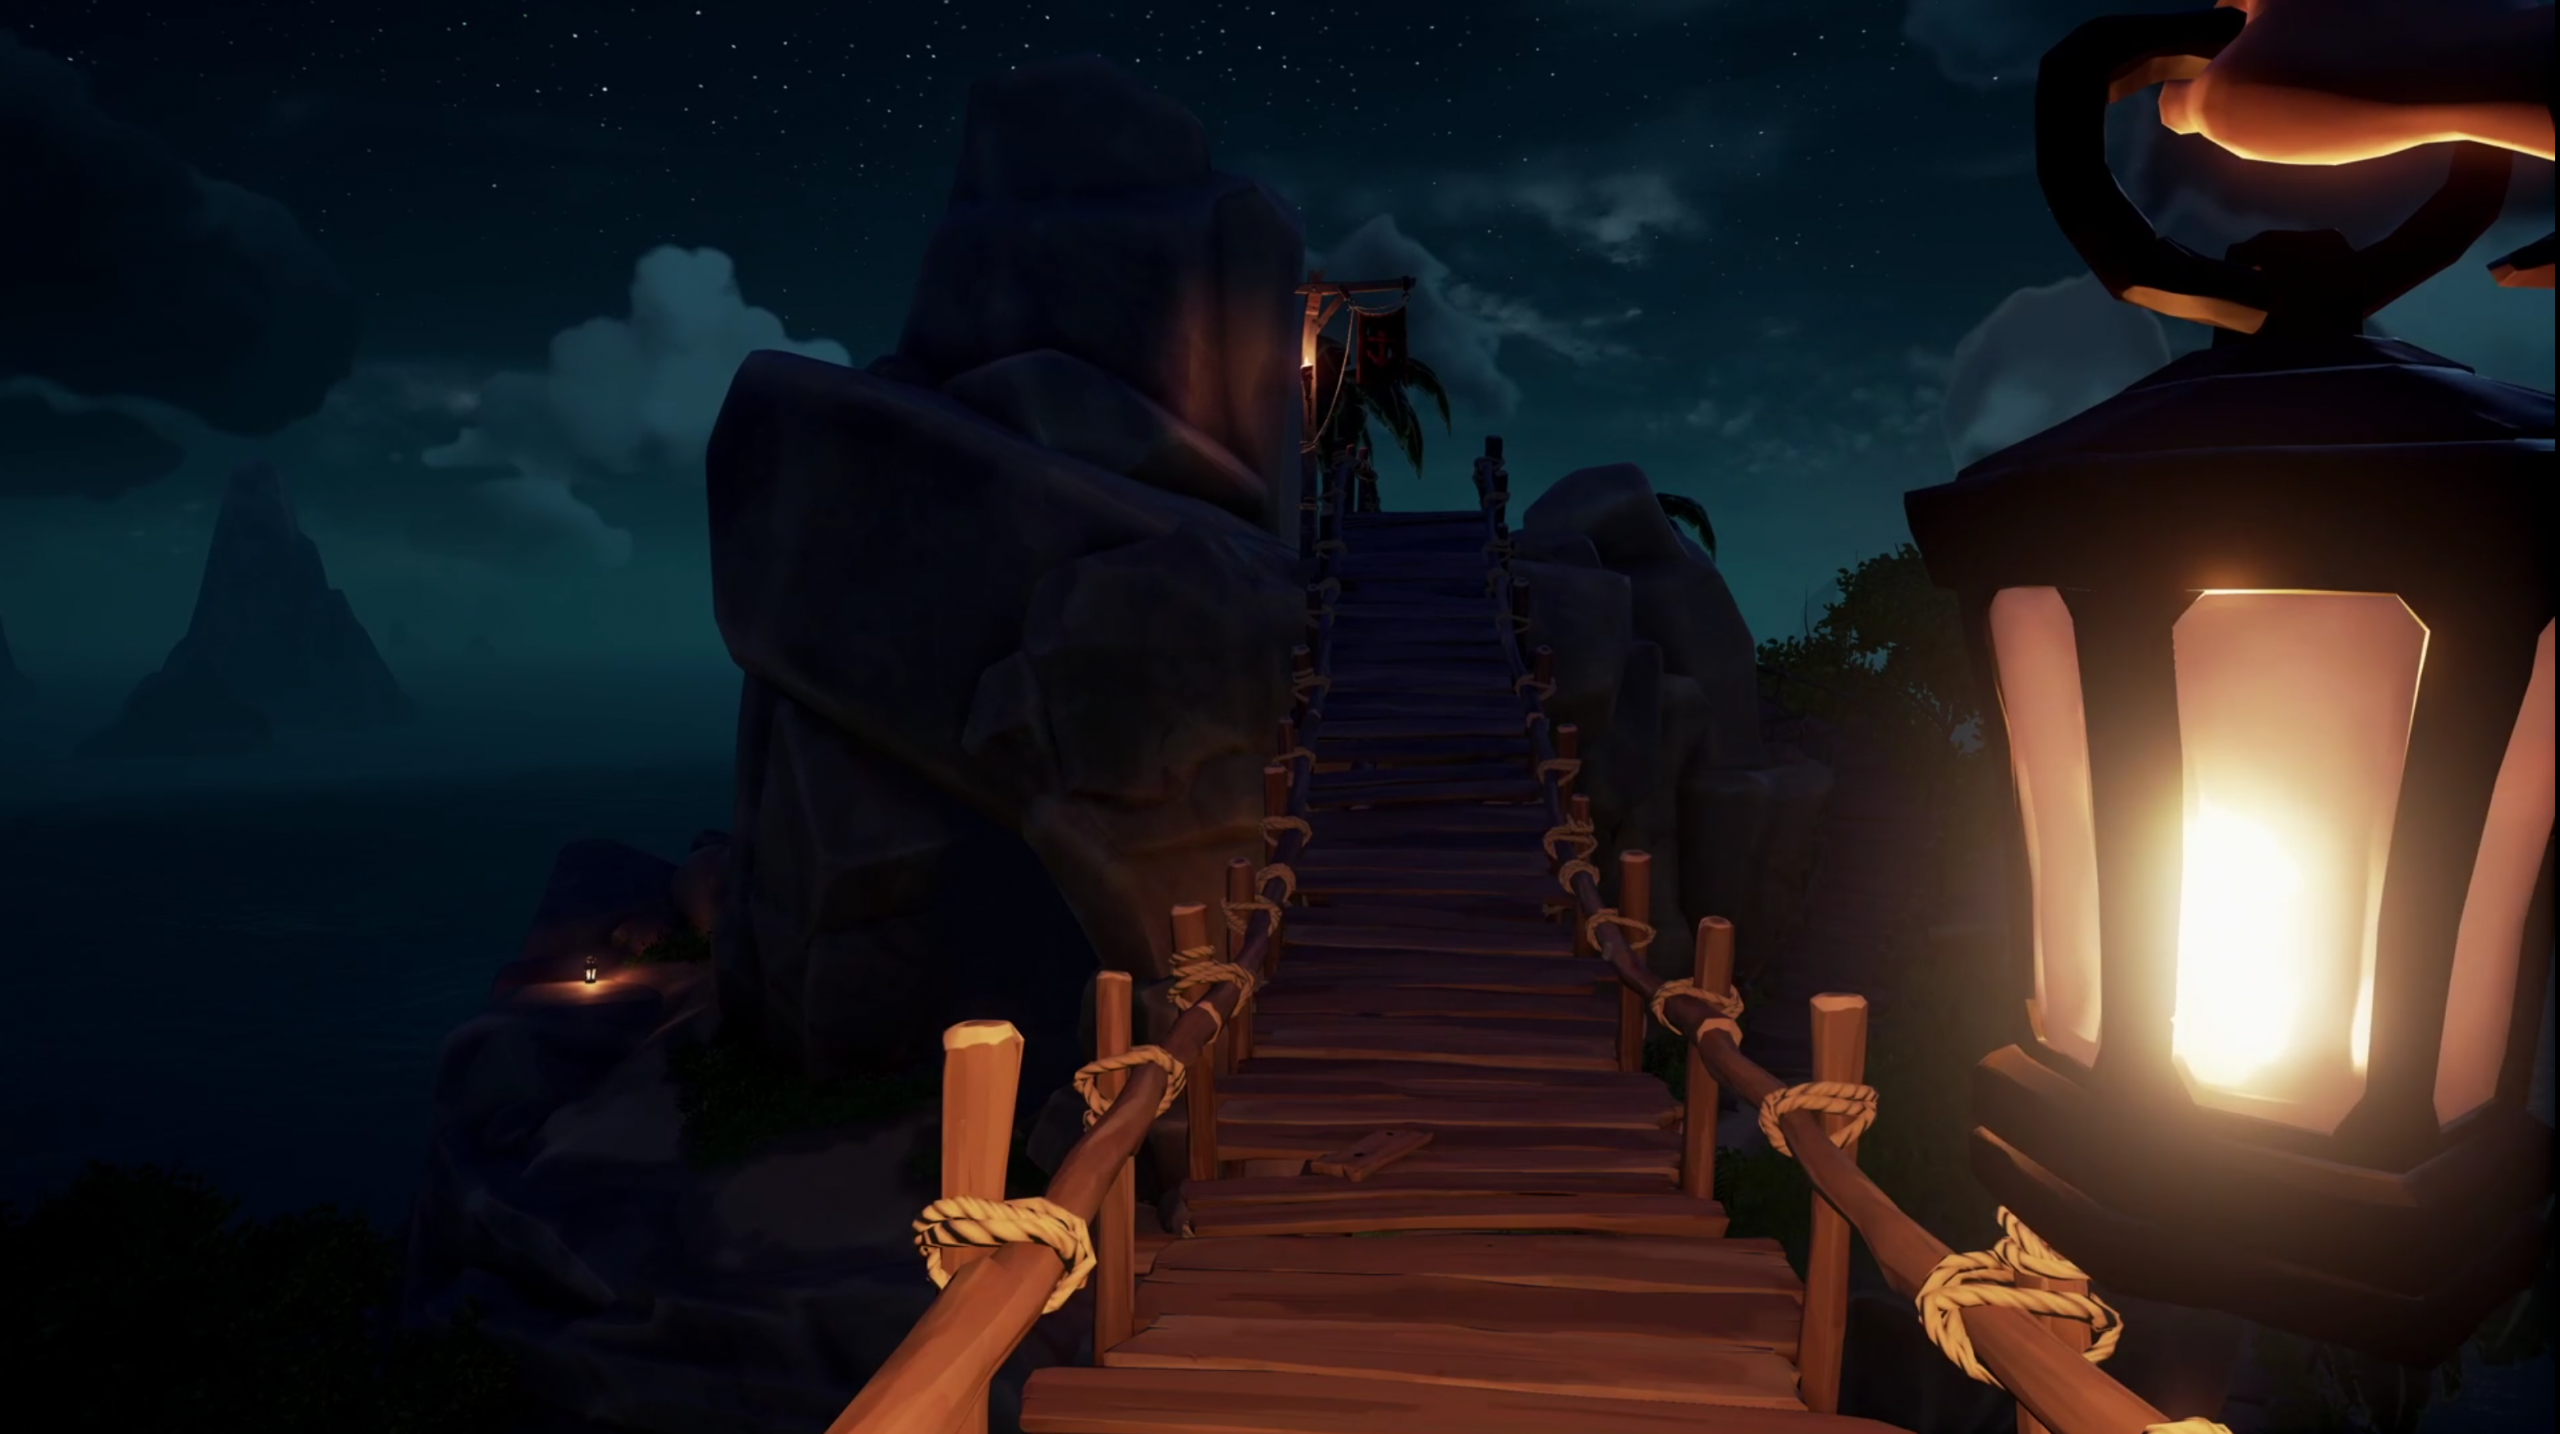 Screenshot showing a lamp being held in first person perspective whilst crossing a wooden bridge. Sea and islands can be seen in the background.